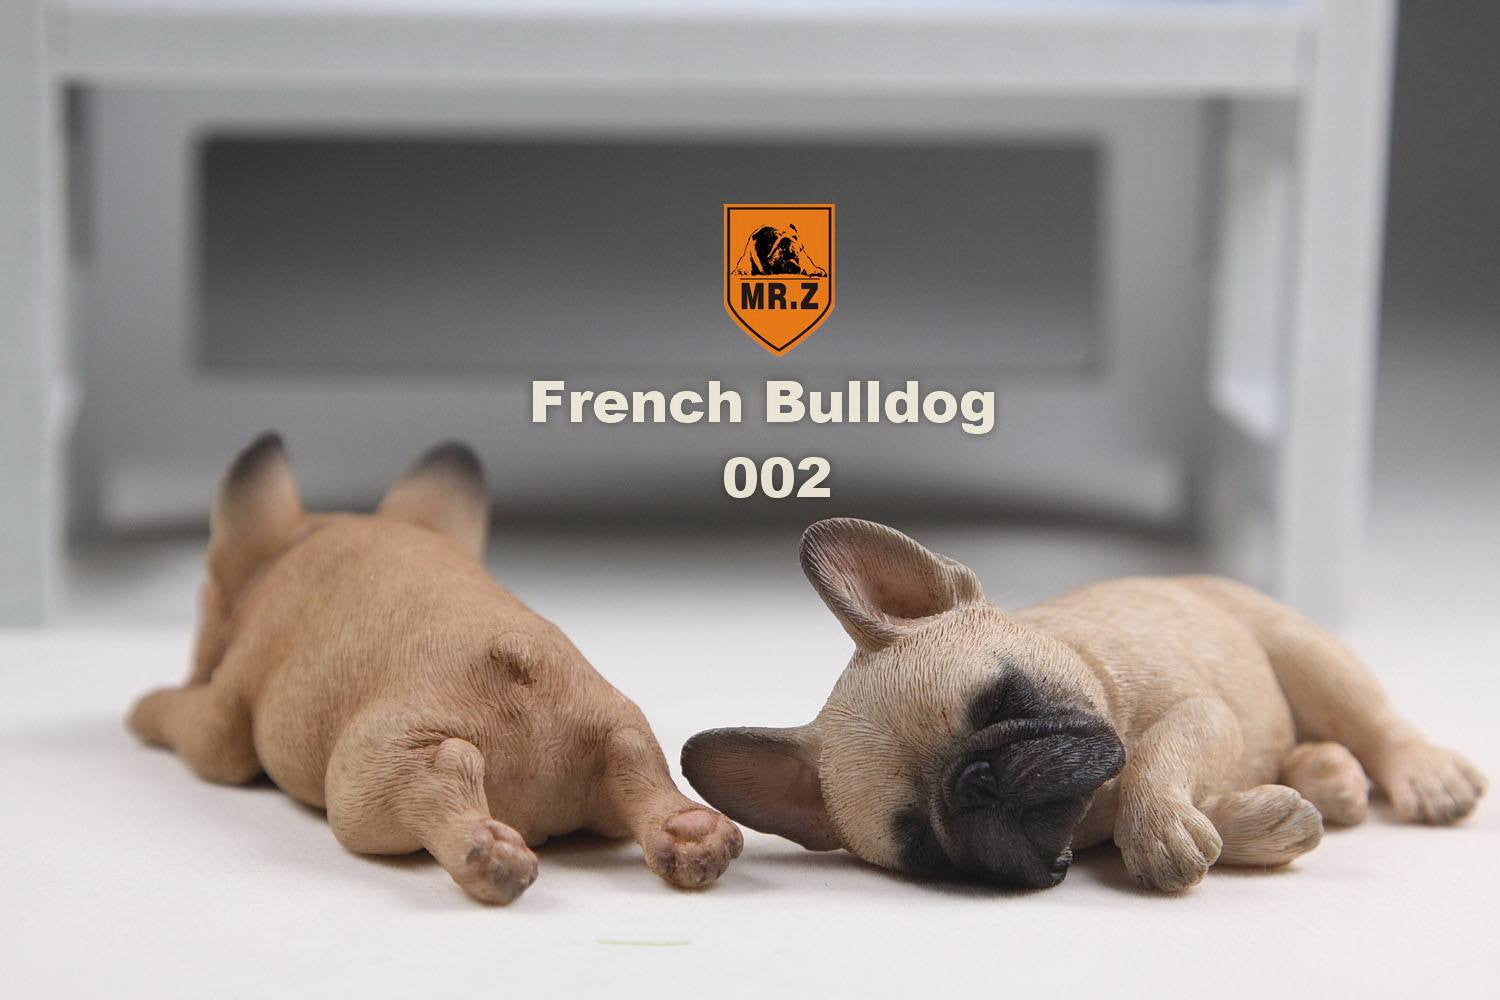 MR.Z - Real Animal Series No.9 - 1/6th Scale French Bulldog (Sleep Mode) 001-005 - Marvelous Toys - 7